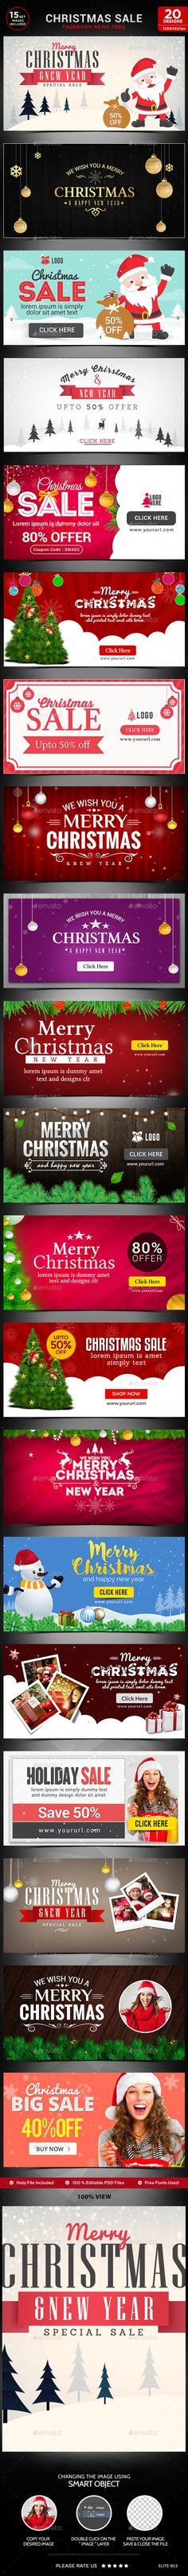 Christmas Sale Facebook Newsfeed Images - 20 Designs Template PSD #design Download: http://graphicriver.net/item/christmas-sale-facebook-newsfeed-images20-designs/14001421?ref=ksioks